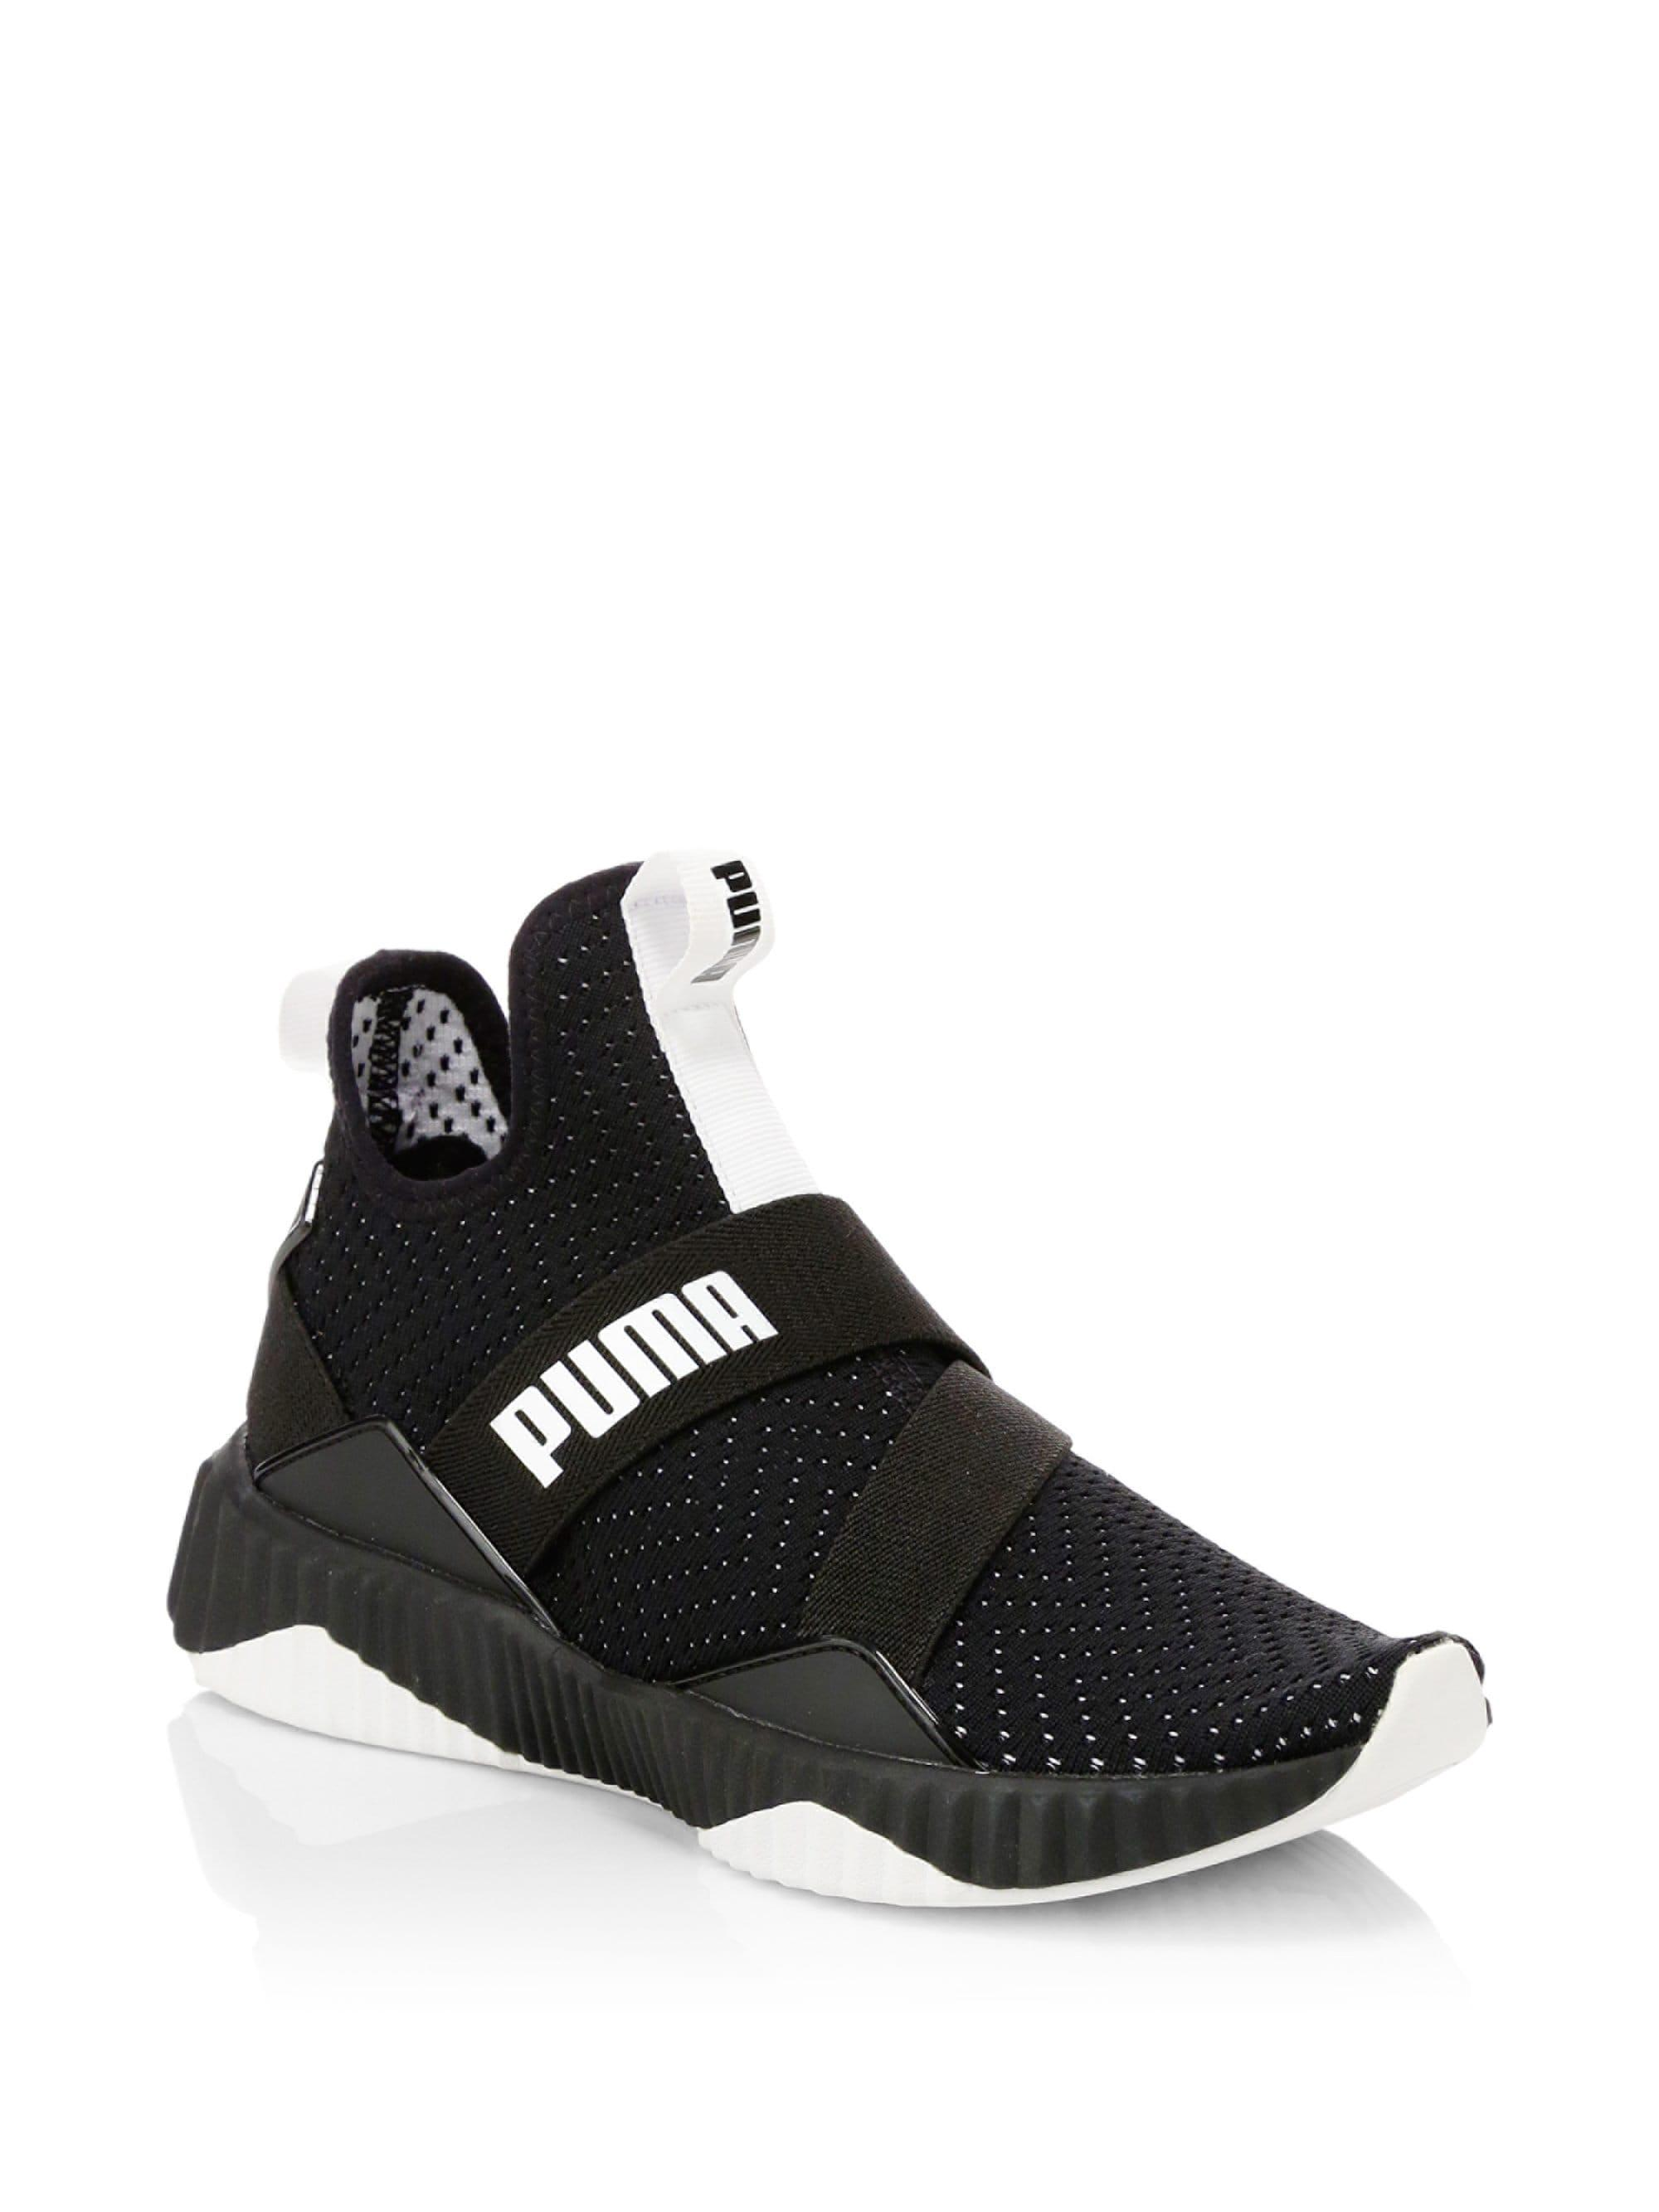 82fca76f5cf671 Lyst - PUMA Defy Wn s Knit Perforated Slip-on Runners in Black for Men